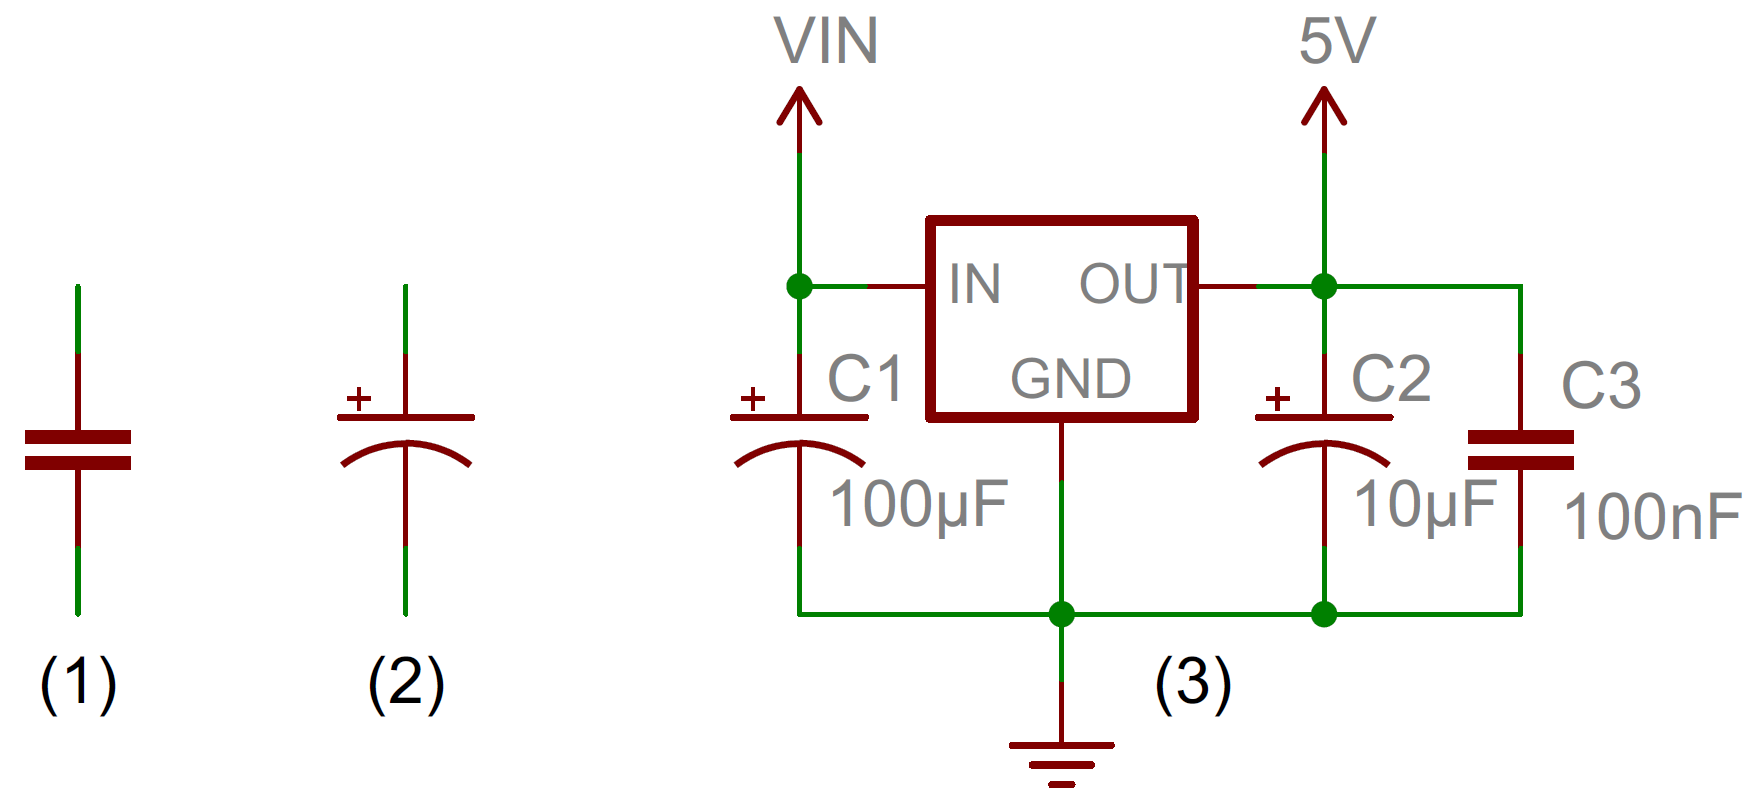 Capacitors Function Generator Circuit Automotivecircuit Diagram Capacitor Symbols